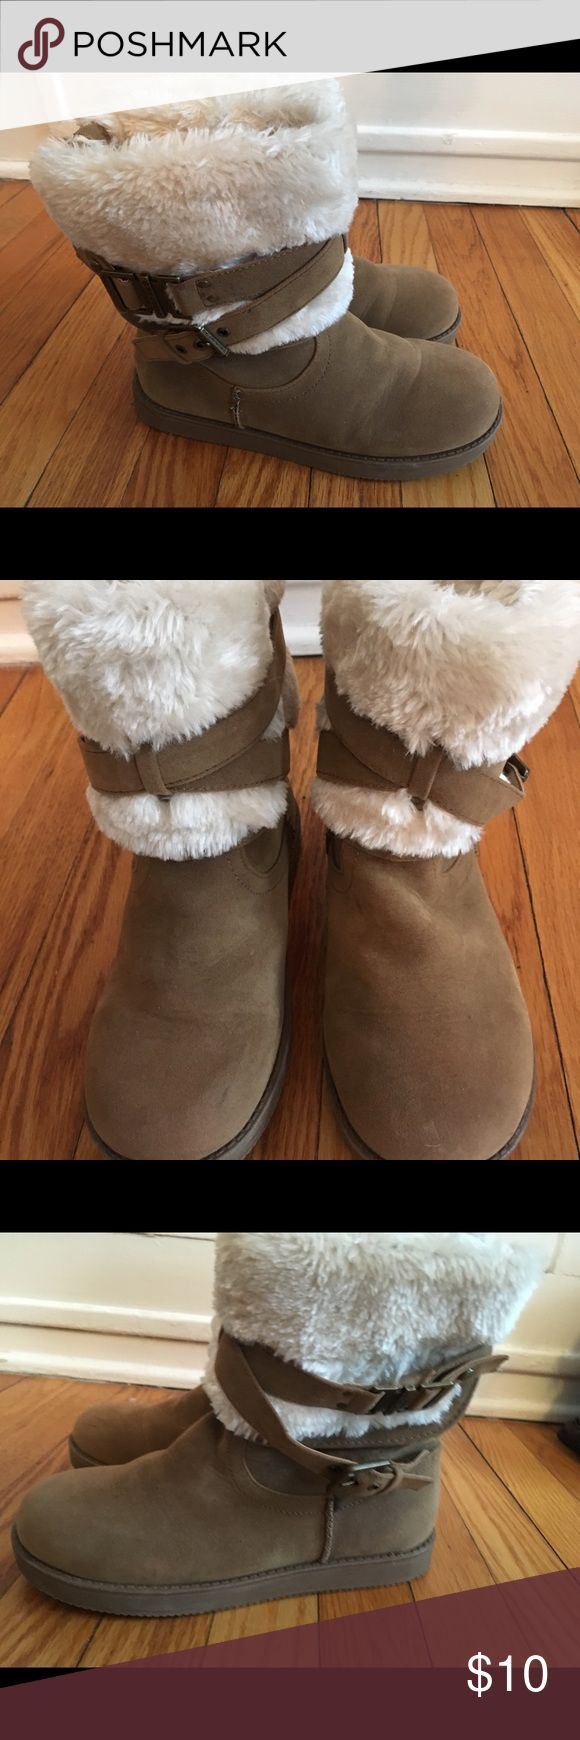 Guess Boots size 6.5 Worn once, super soft Guess winter boots. Has one scuff on toe, but can definitely be cleaned off. Size 6.5. Slip on and off - buckle detail can be tightened / loosened if needed. Guess Shoes Winter & Rain Boots